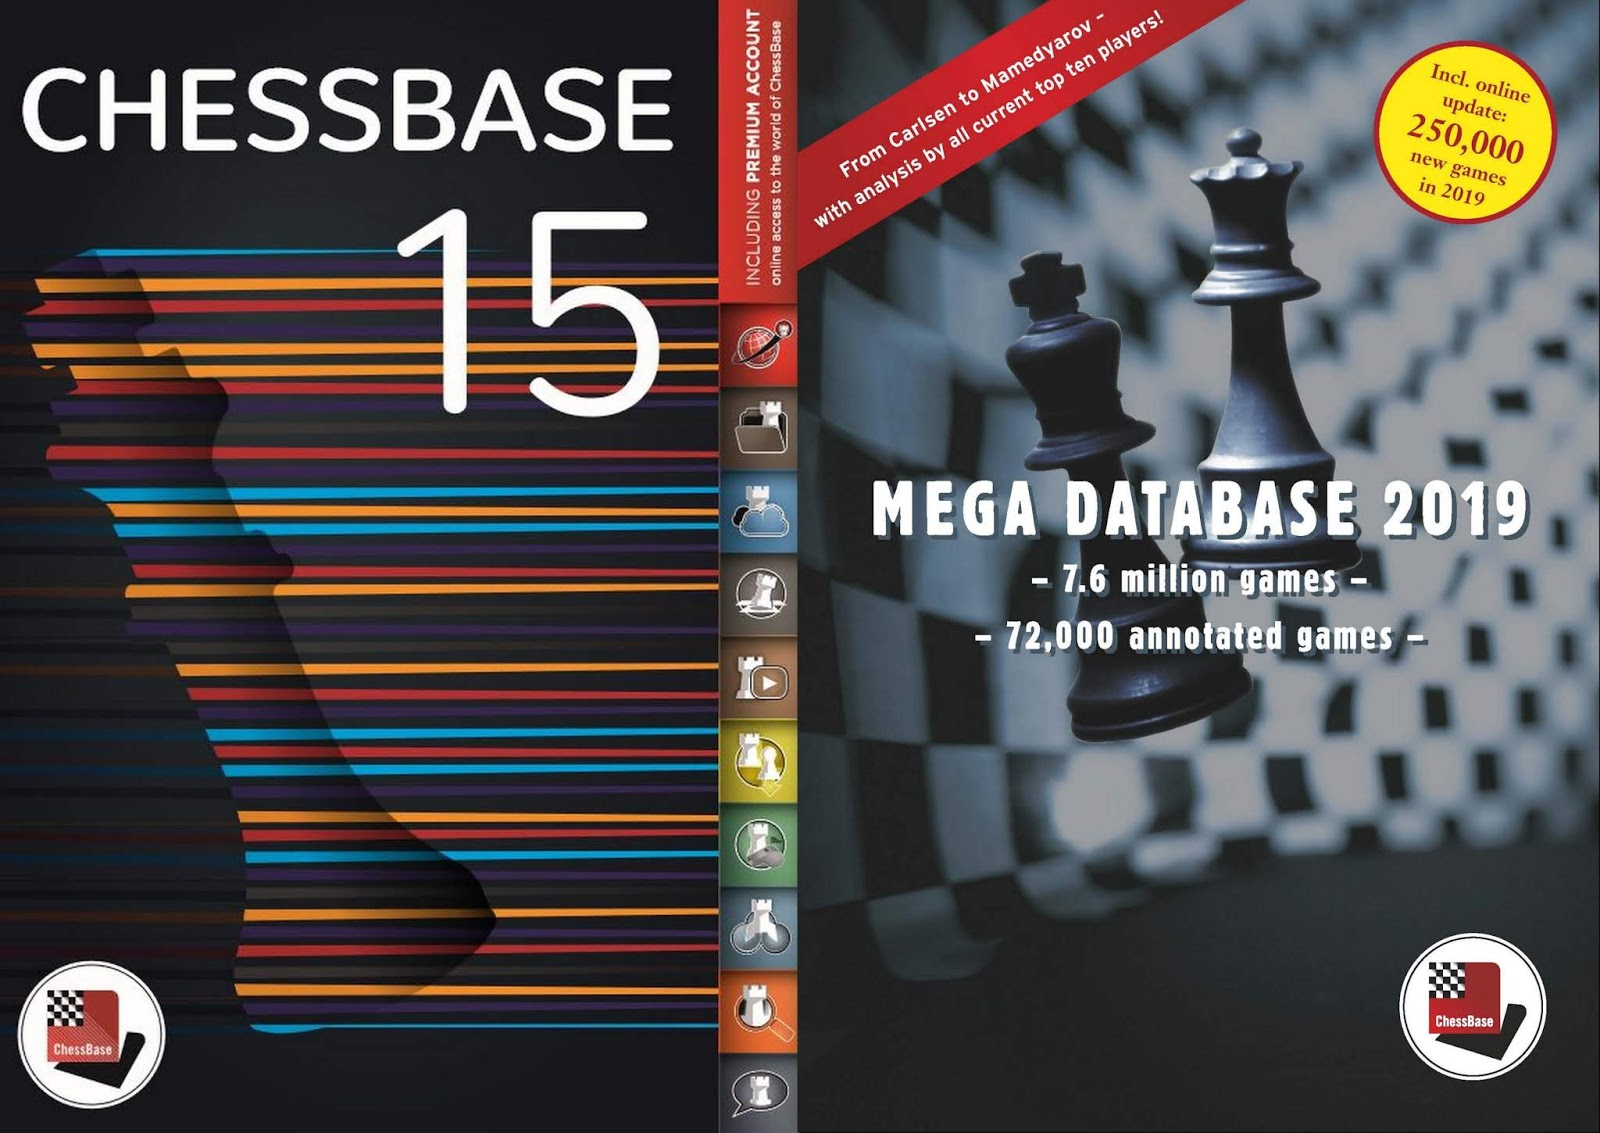 Peter Long on Chess: Special Pricing for ChessBase 15